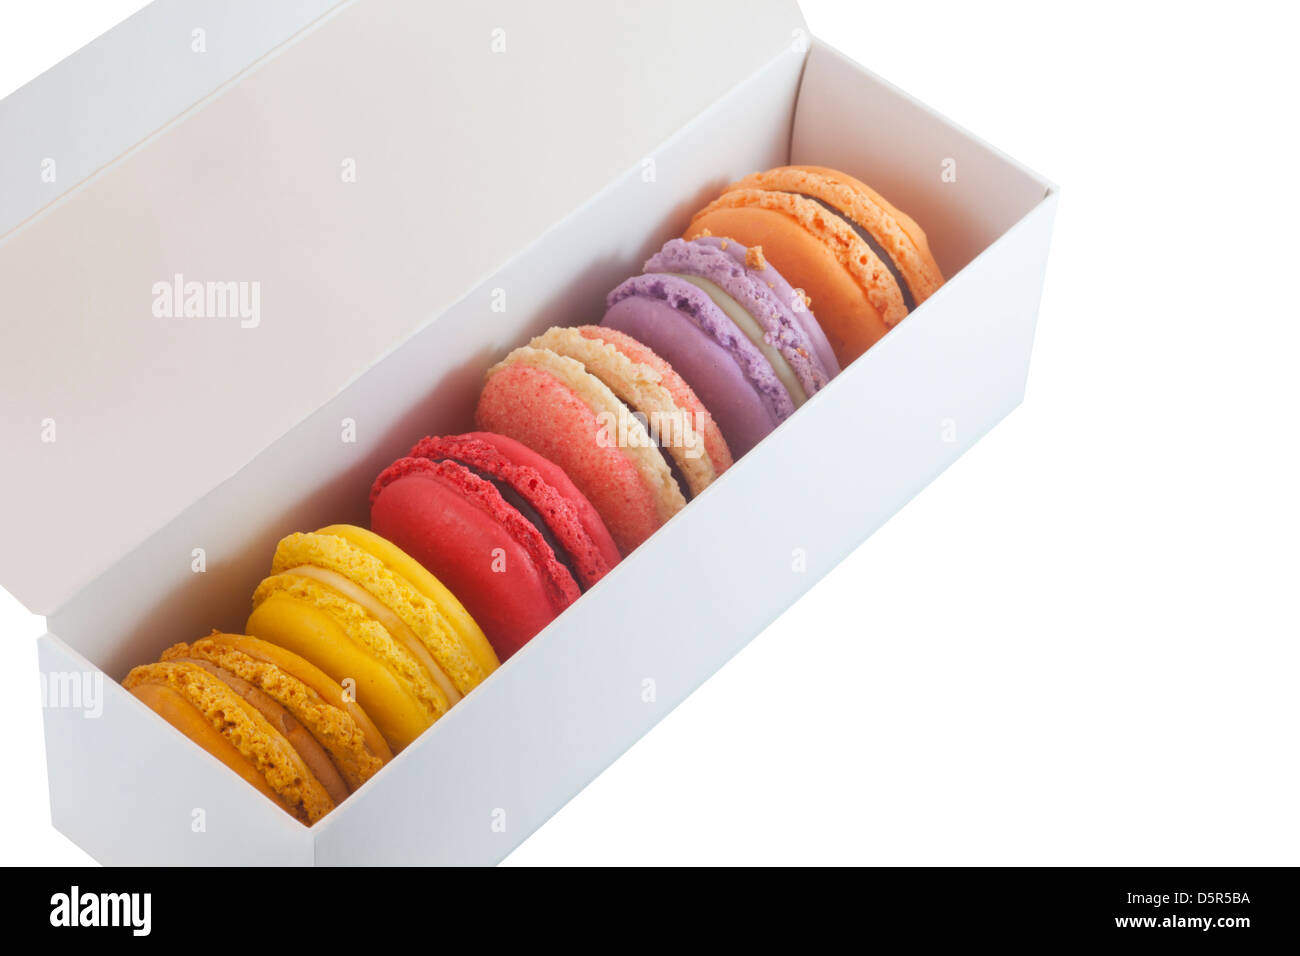 Gift box of macarons - Stock Image